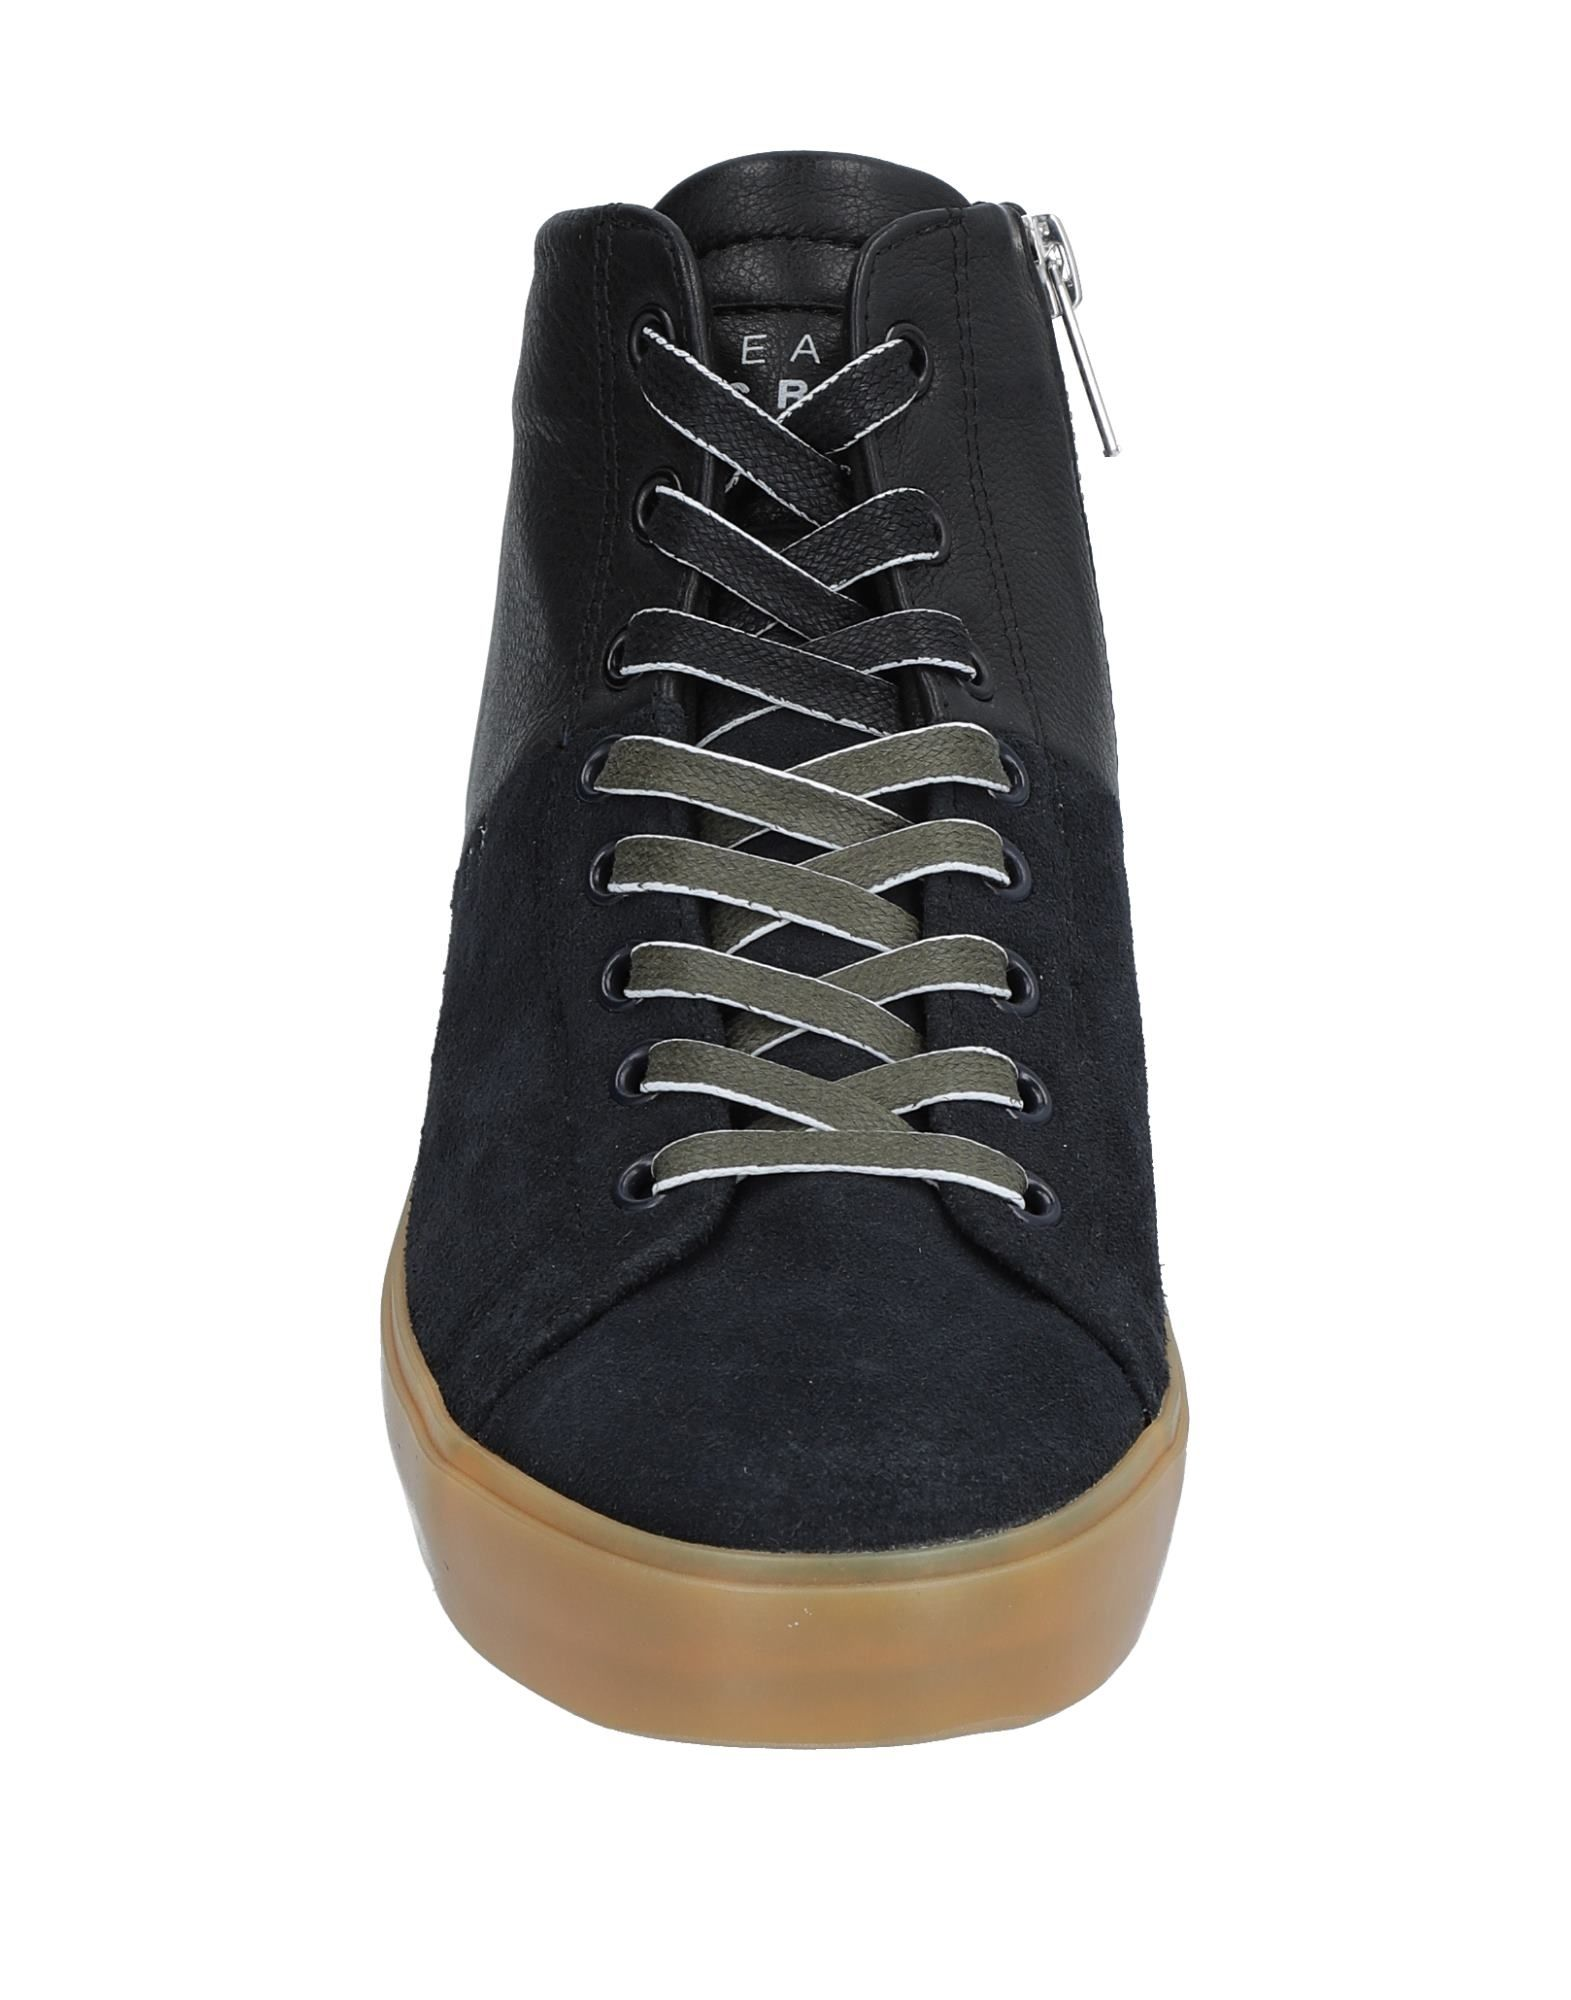 Leather Leather Crown Sneakers - Women Leather Leather Crown Sneakers online on  Canada - 11526908WW 788b03